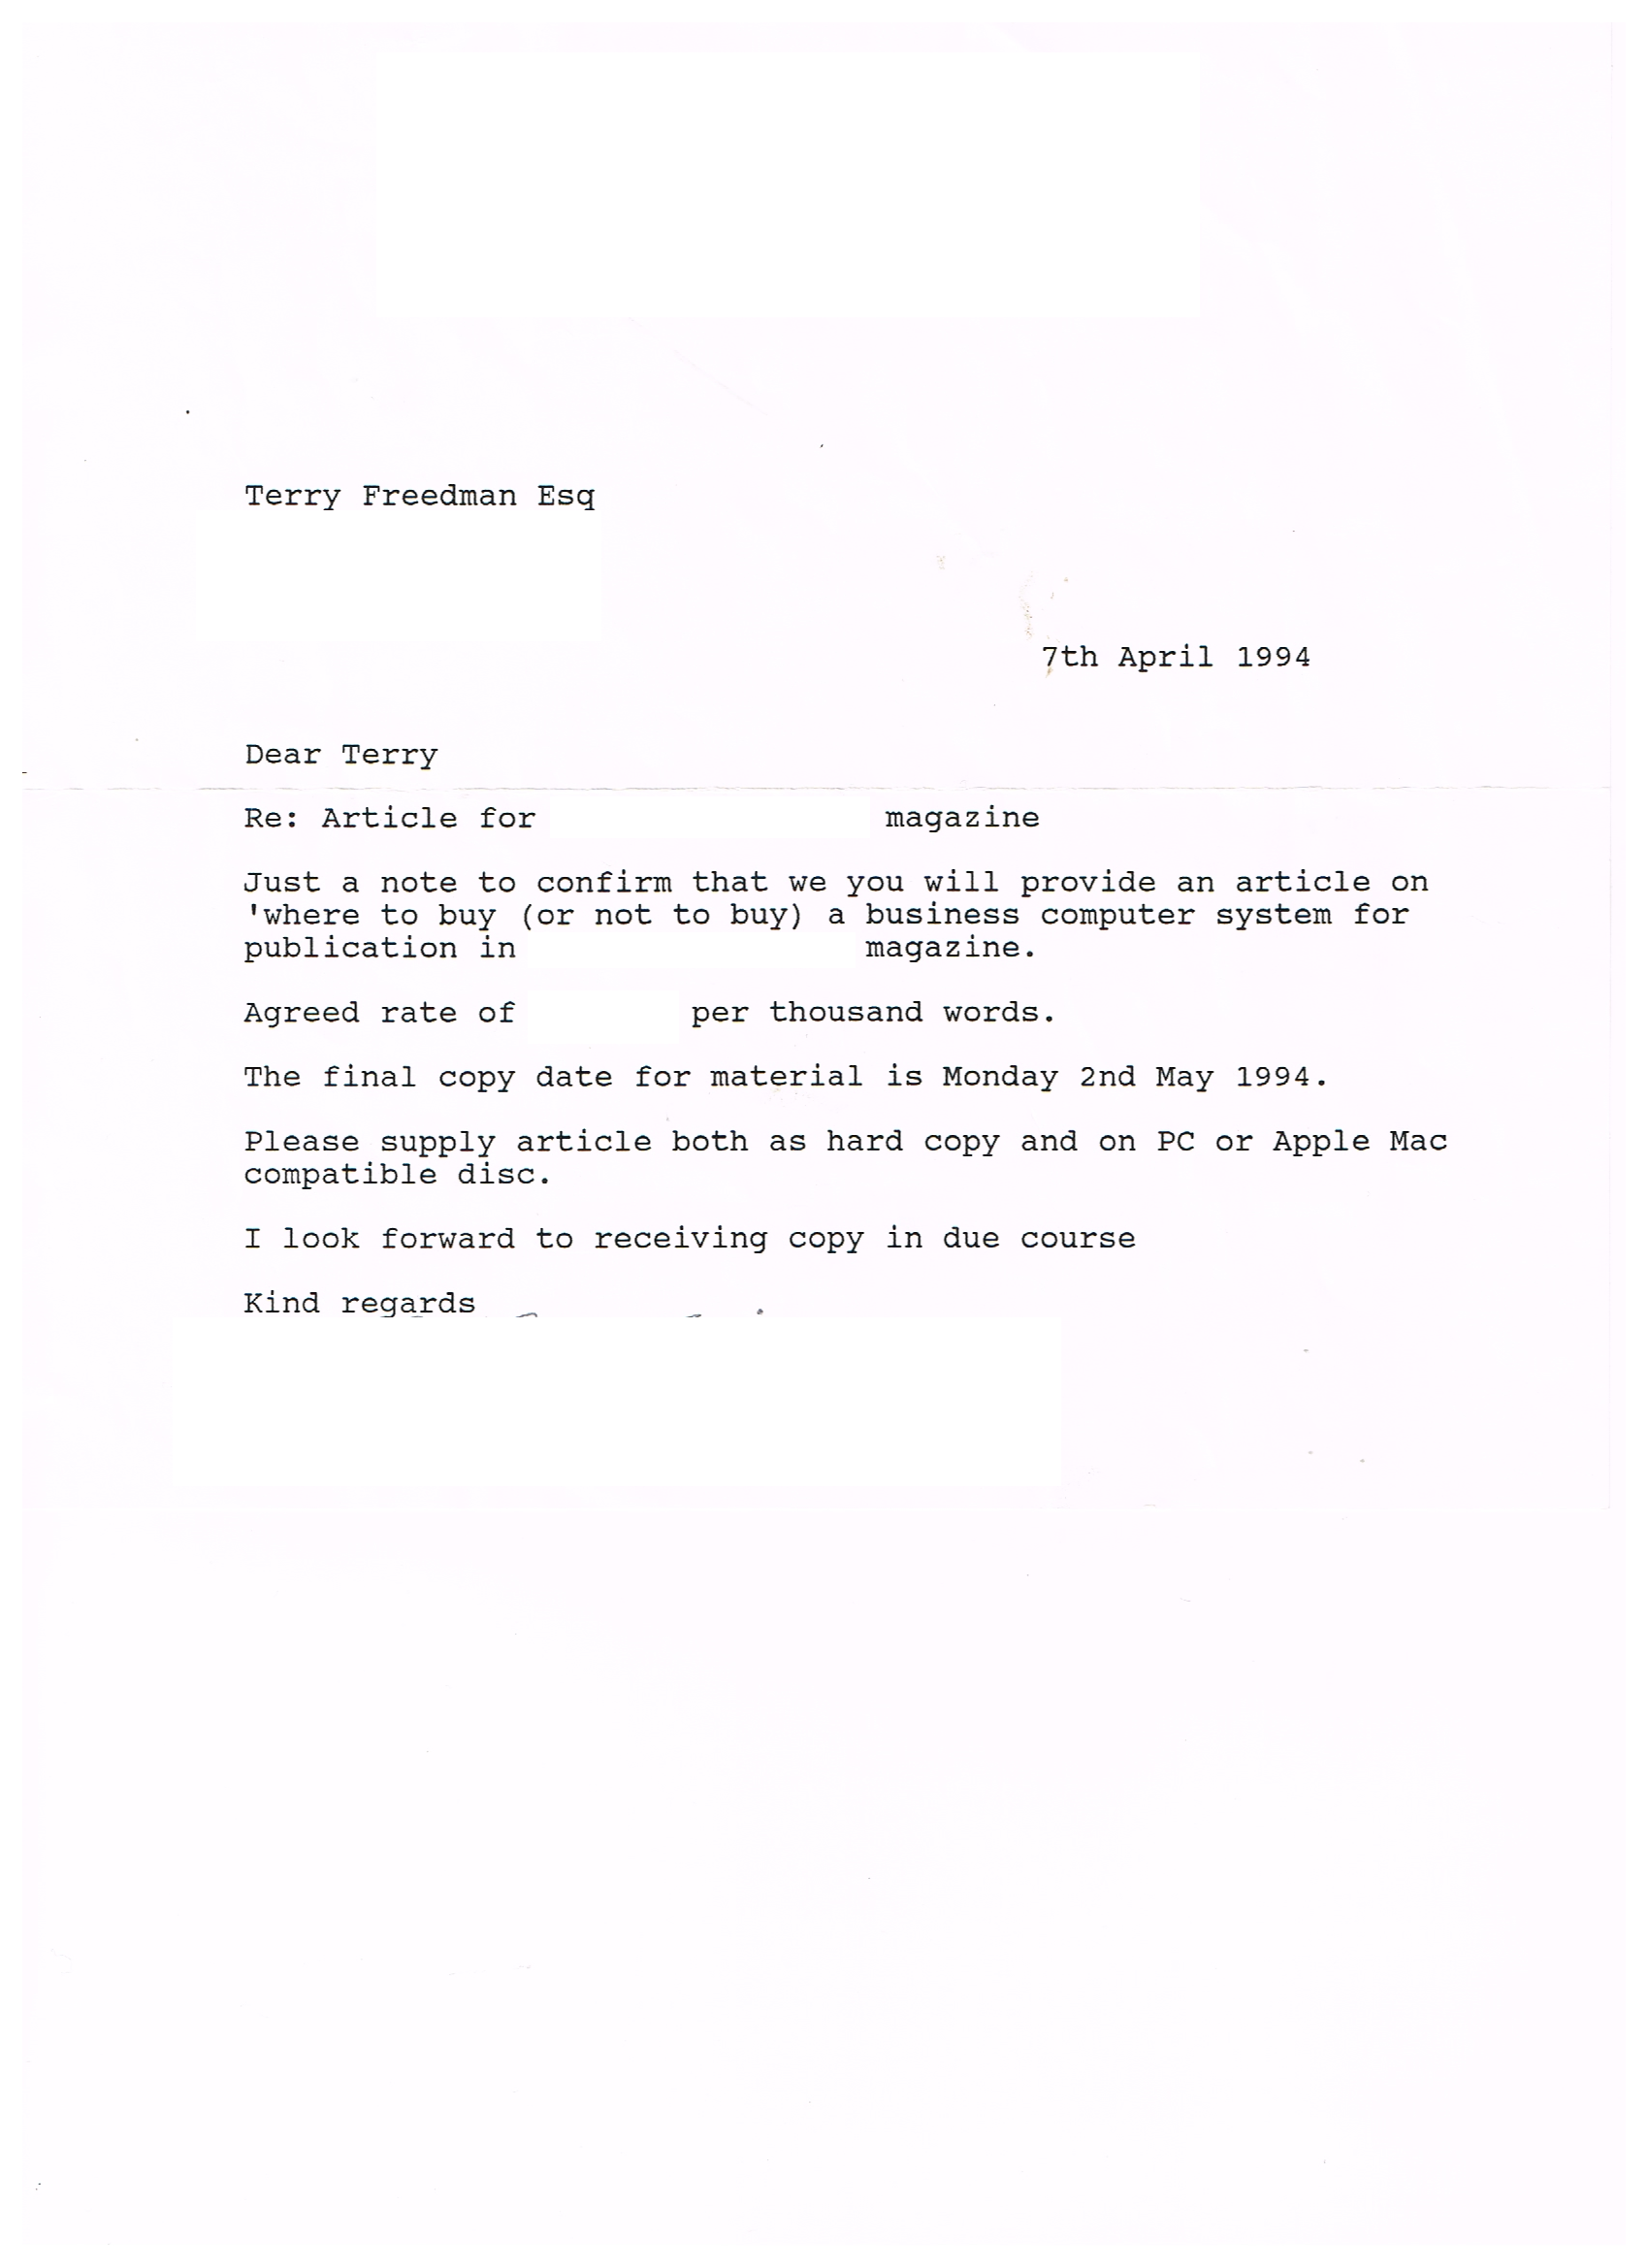 The commission I received in April 1994.